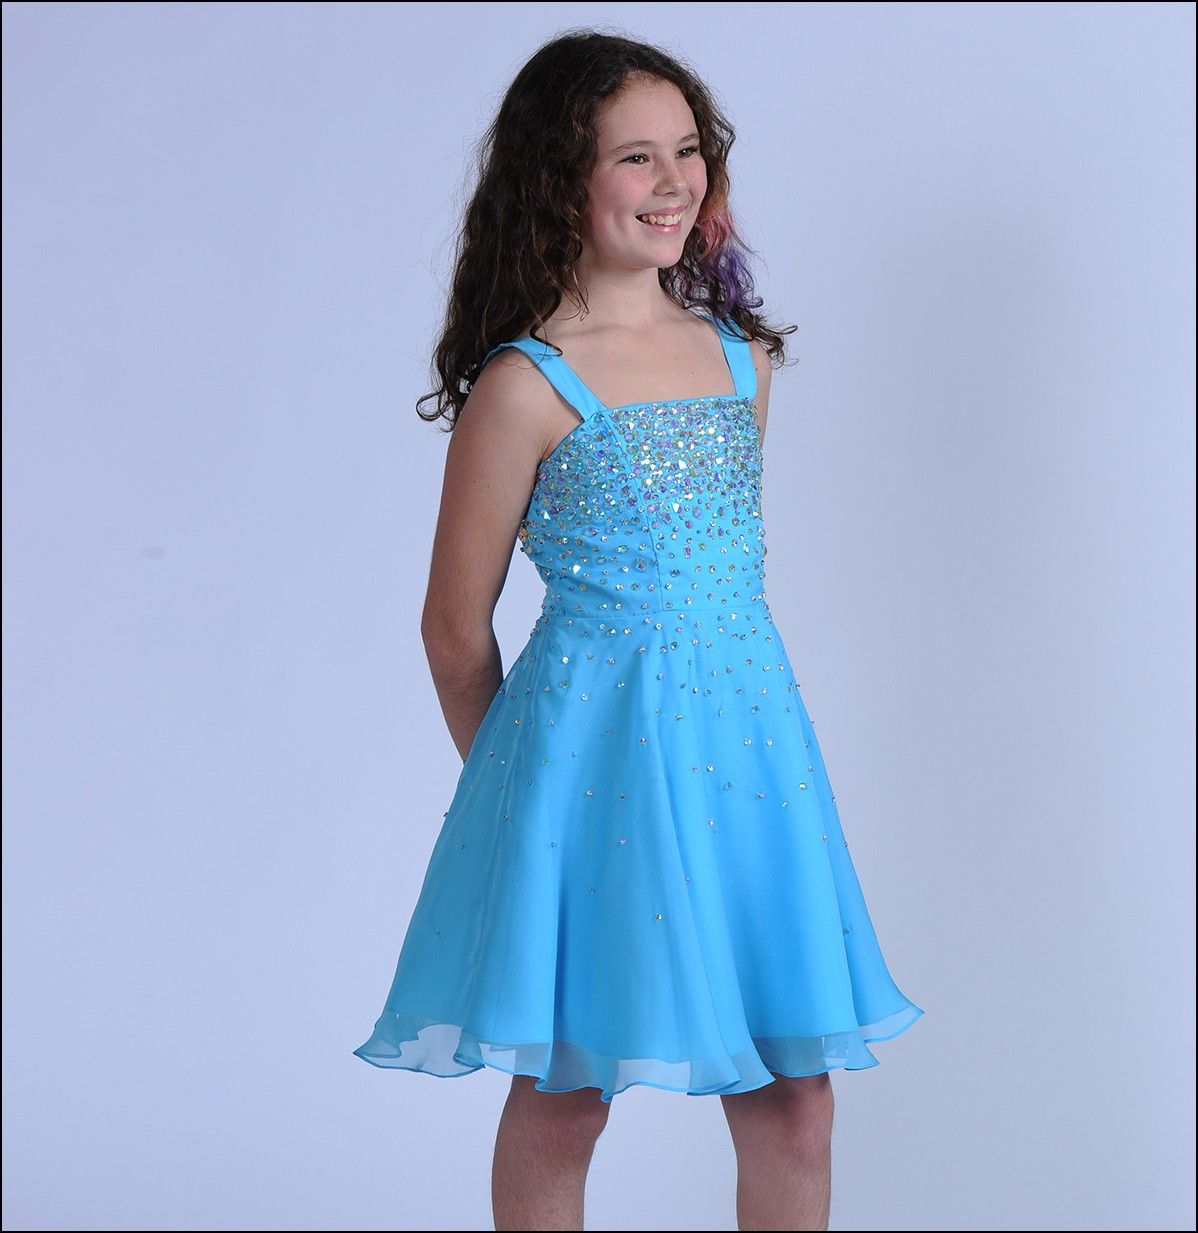 Dorable Tween Girl Party Dresses Picture Collection - All Wedding ...